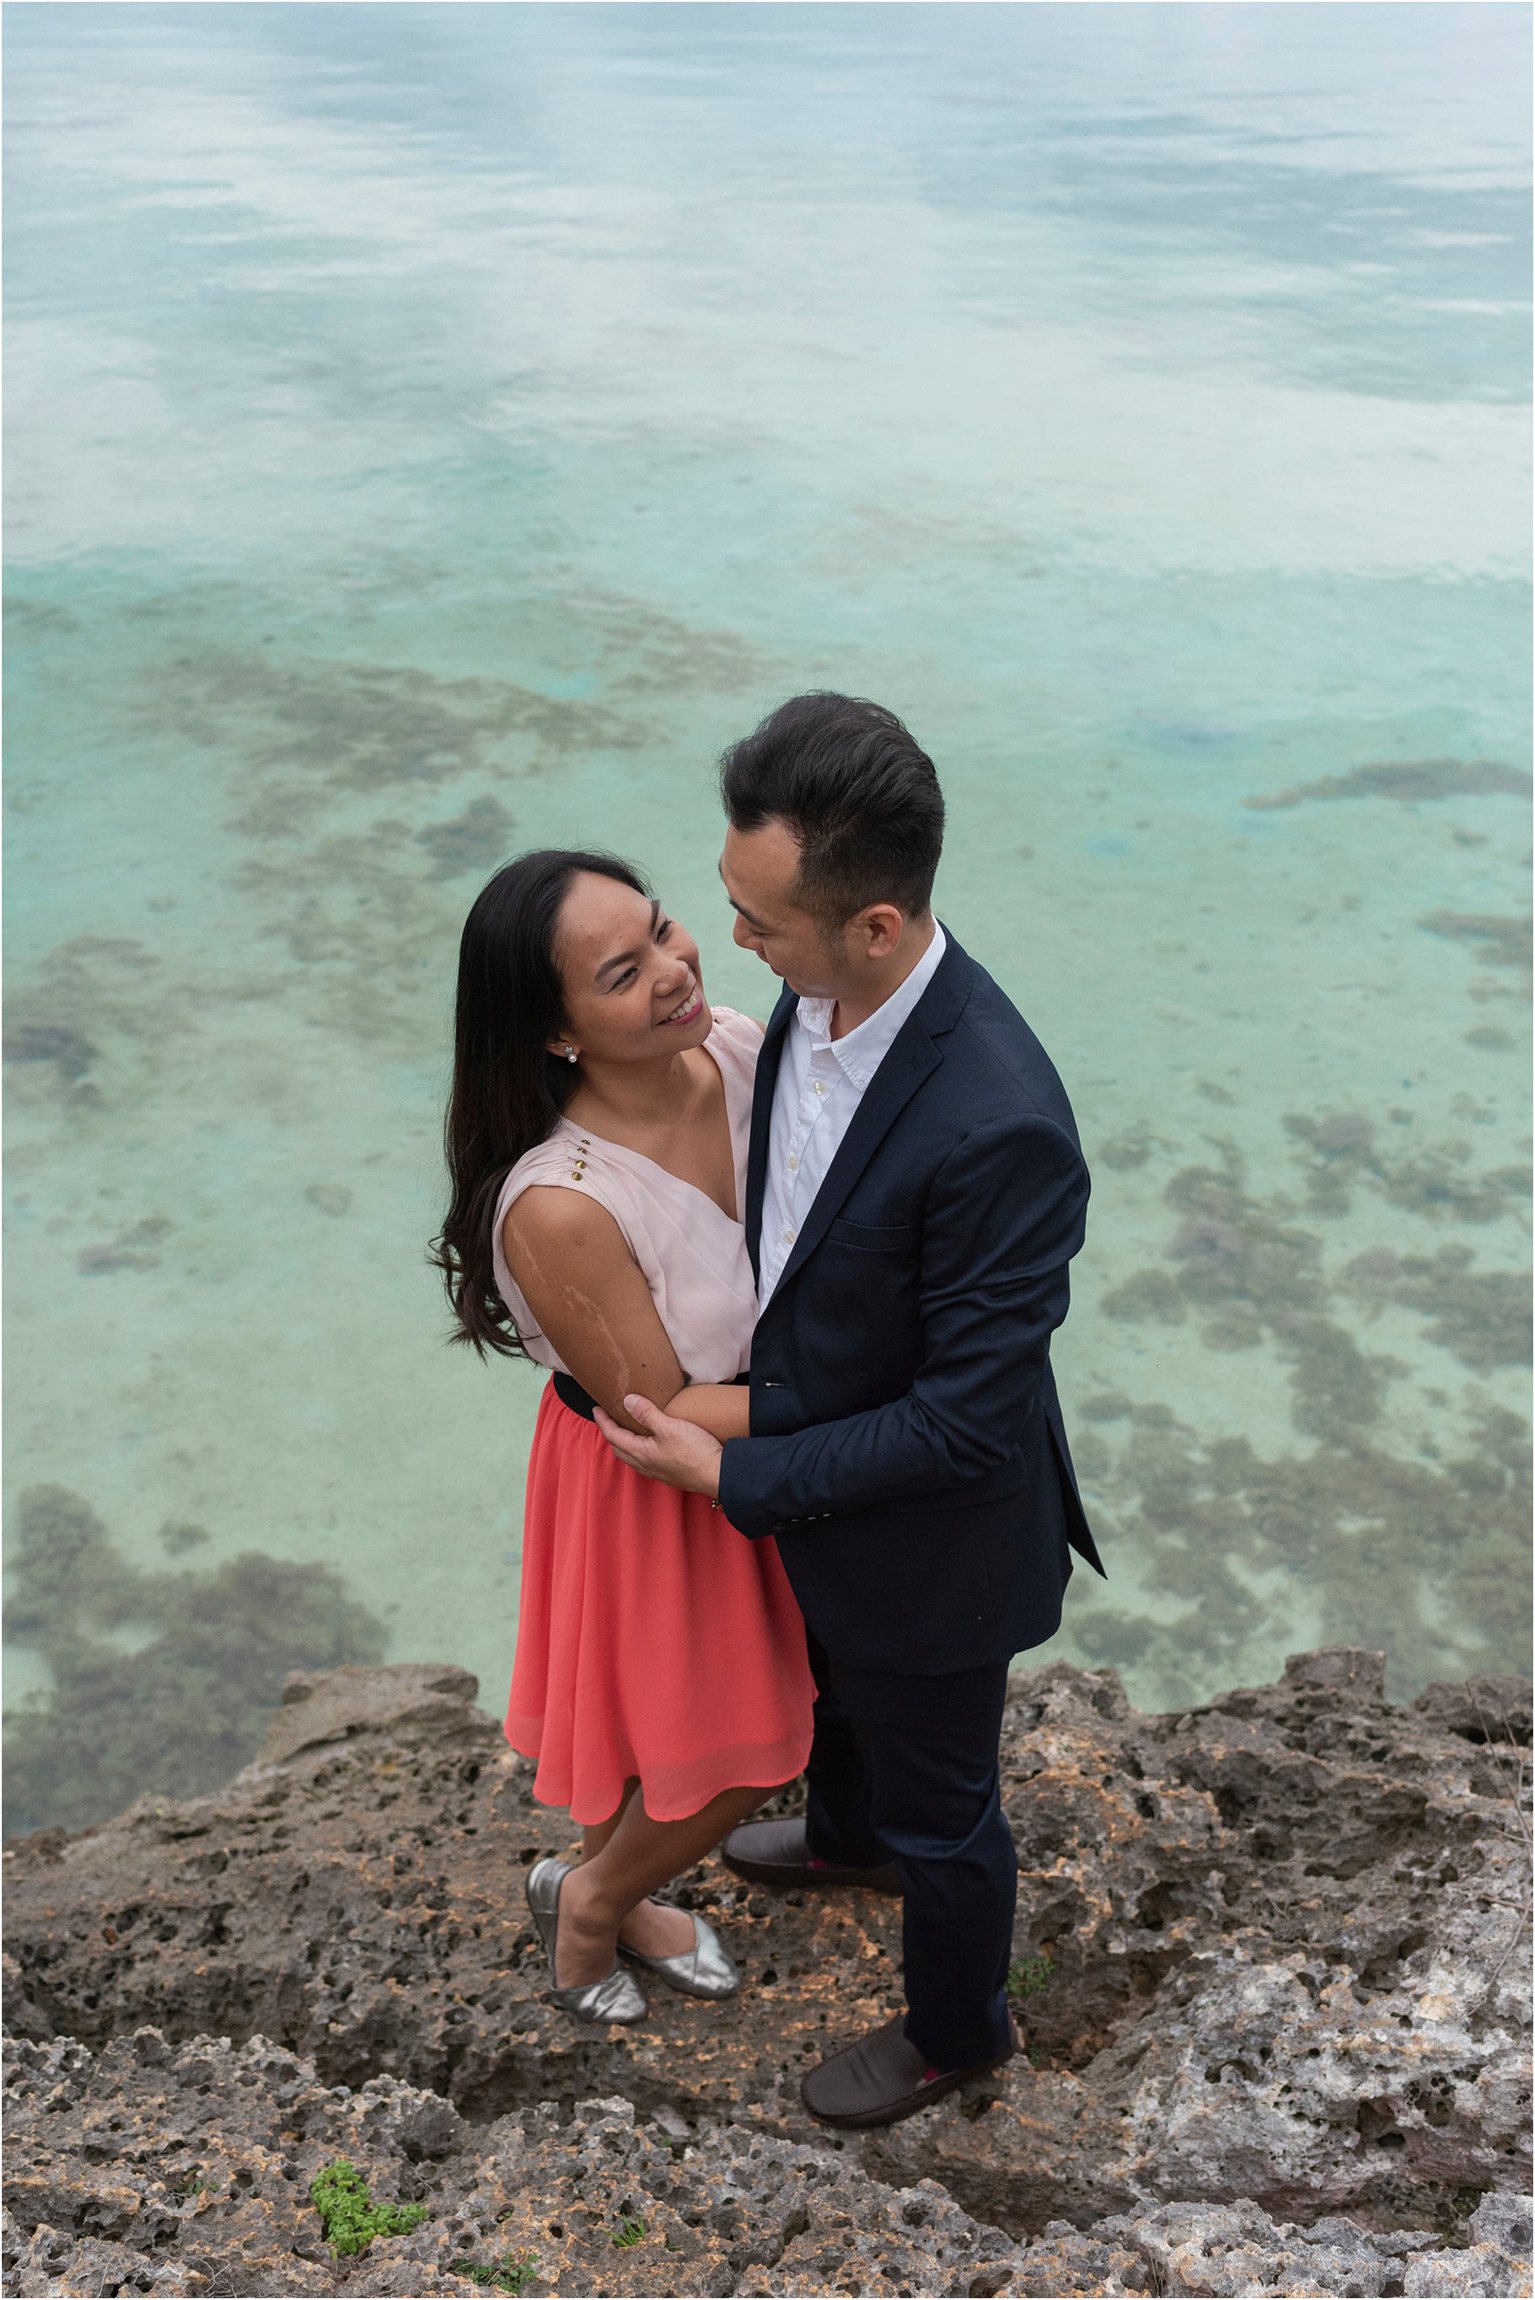 ©FianderFoto_Bermuda Engagement_Photographer_Owen_Chanson_023.jpg